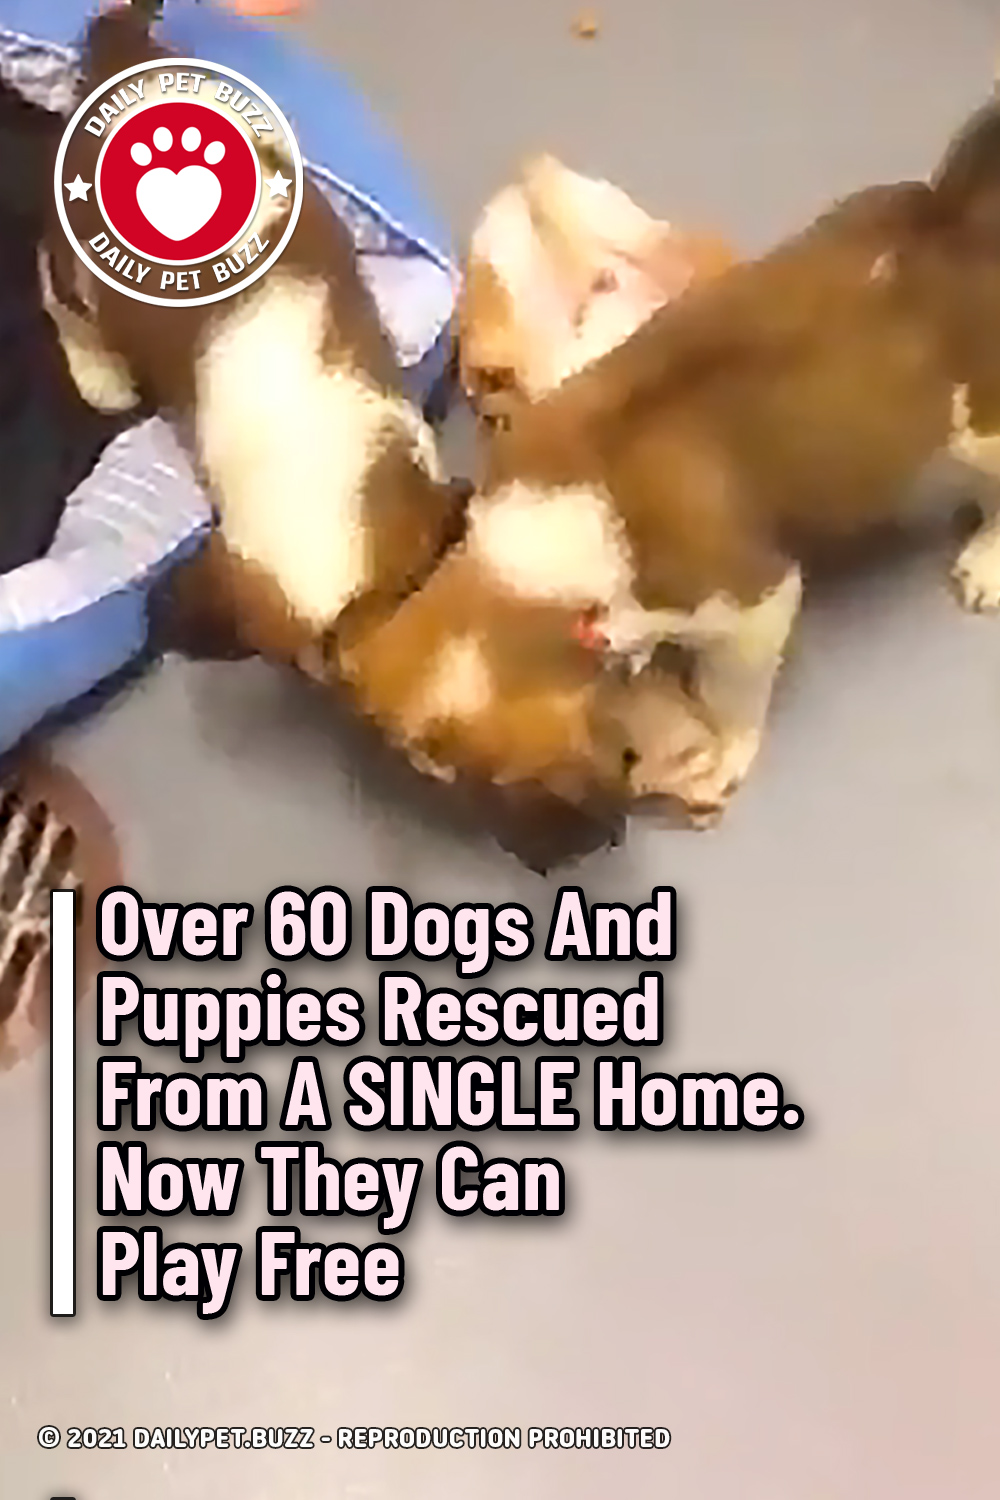 Over 60 Dogs And Puppies Rescued From A SINGLE Home. Now They Can Play Free